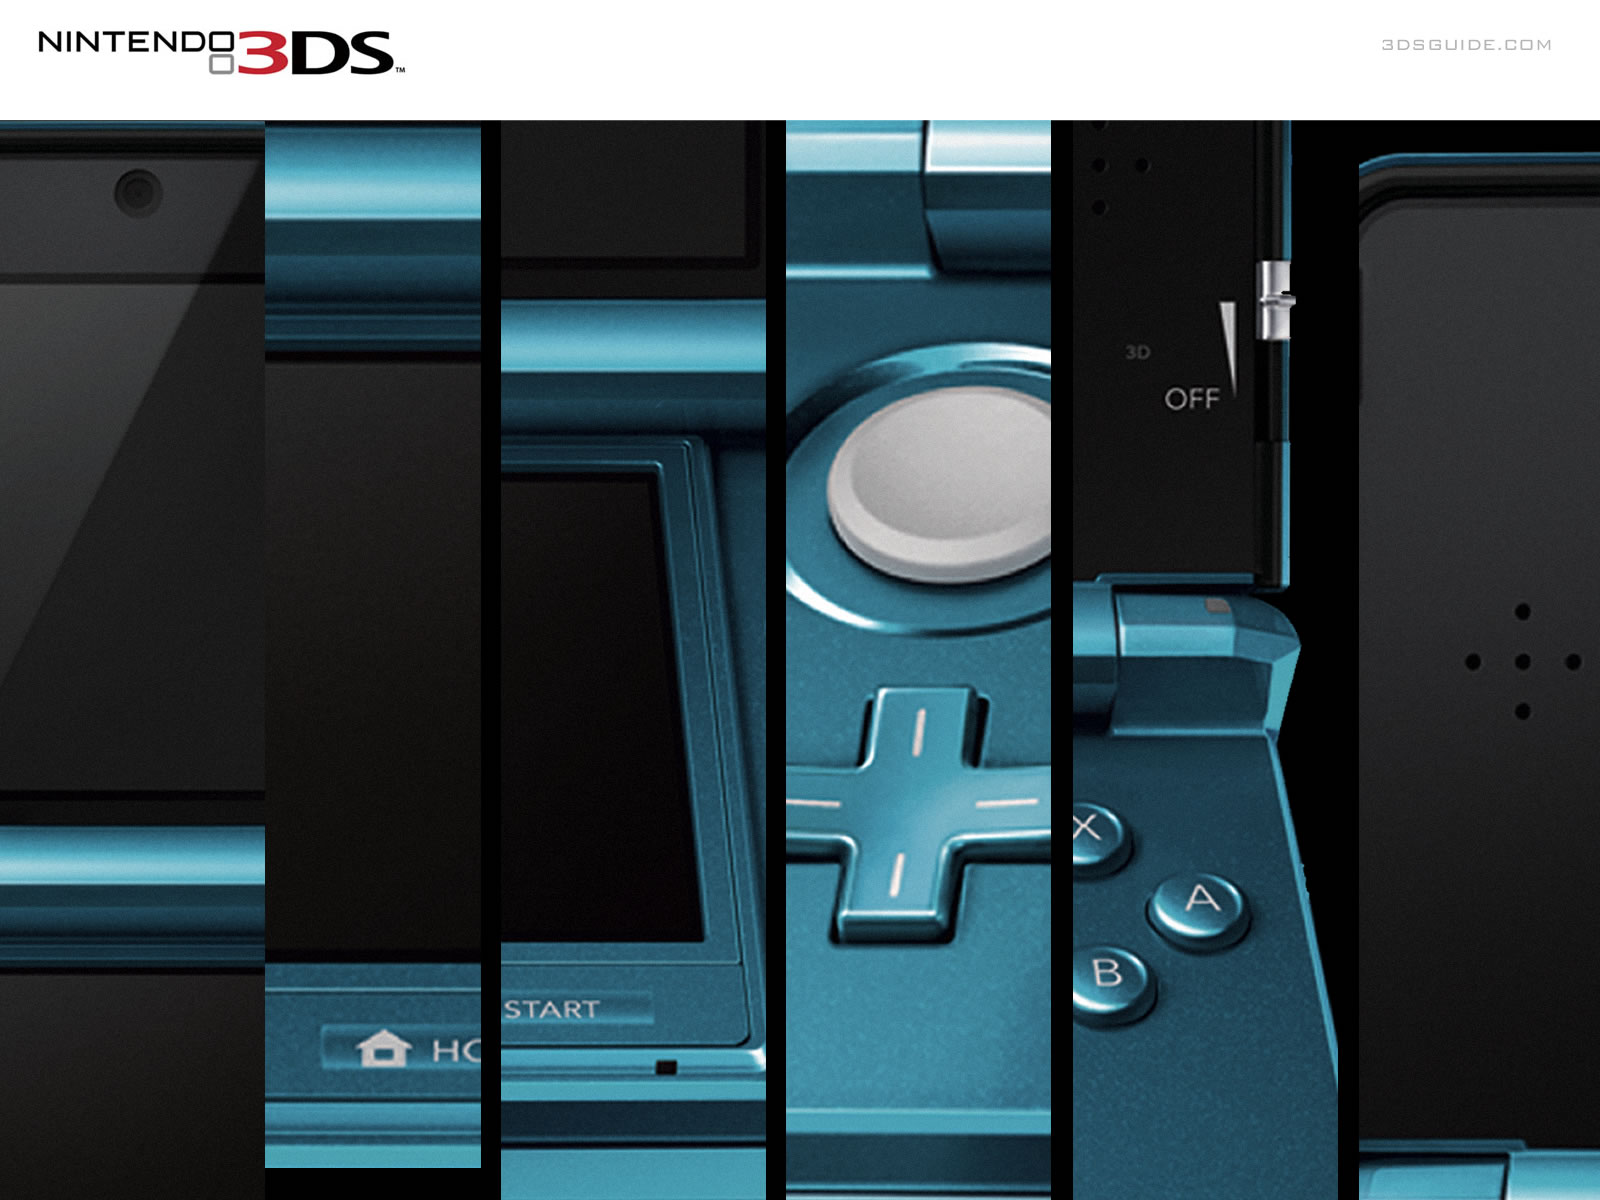 nintendo-3ds-wallpaper-5-1600x1200